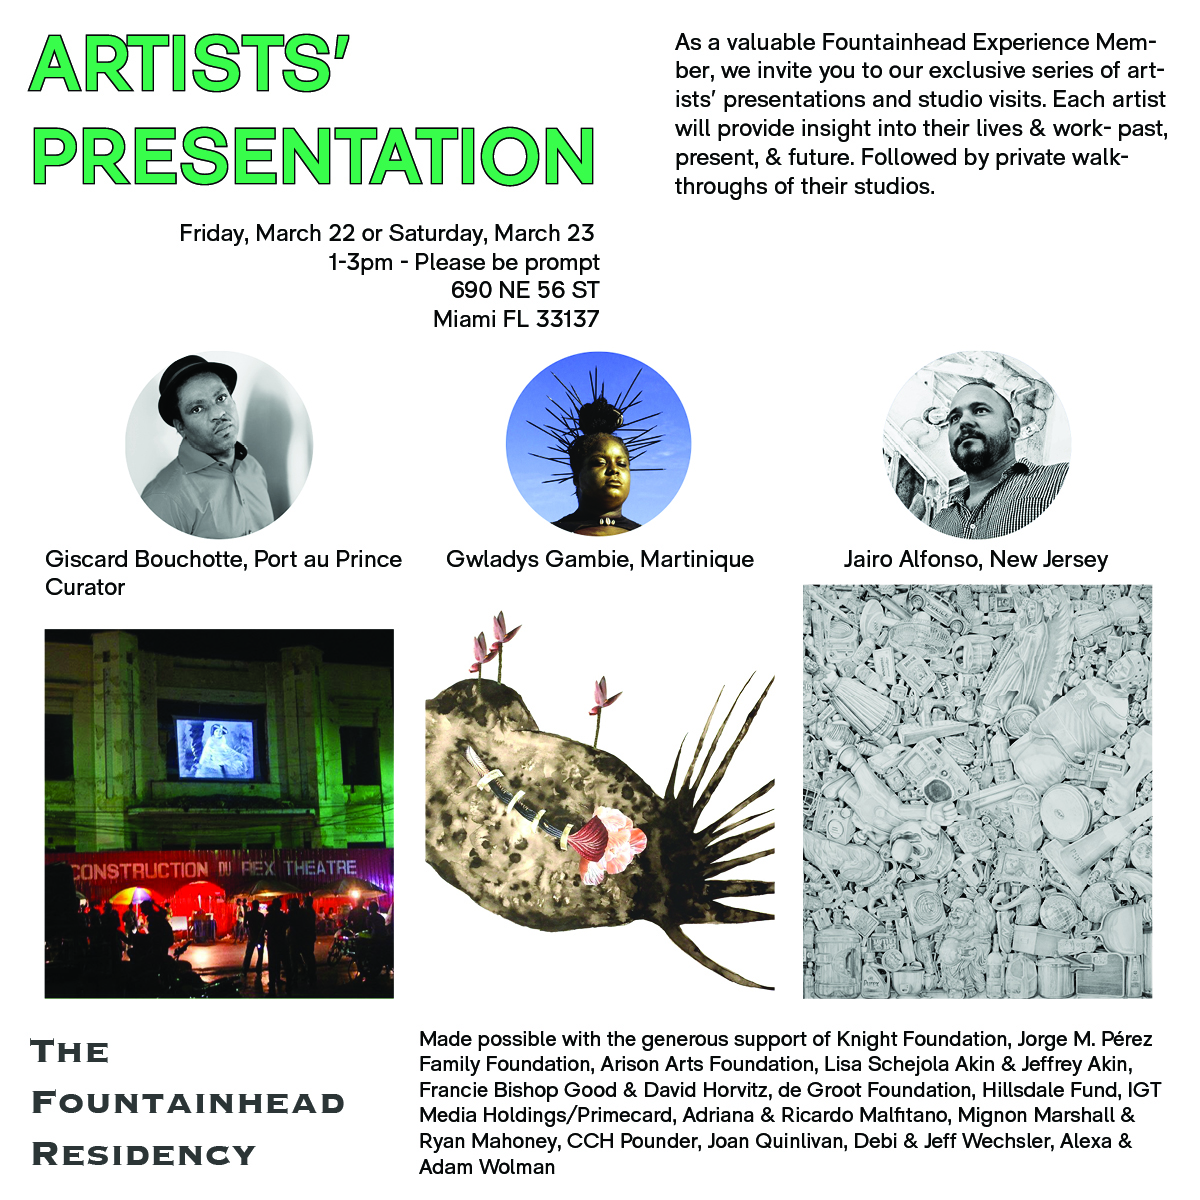 Fountainhead_March_Artists Presentation_invite.jpg